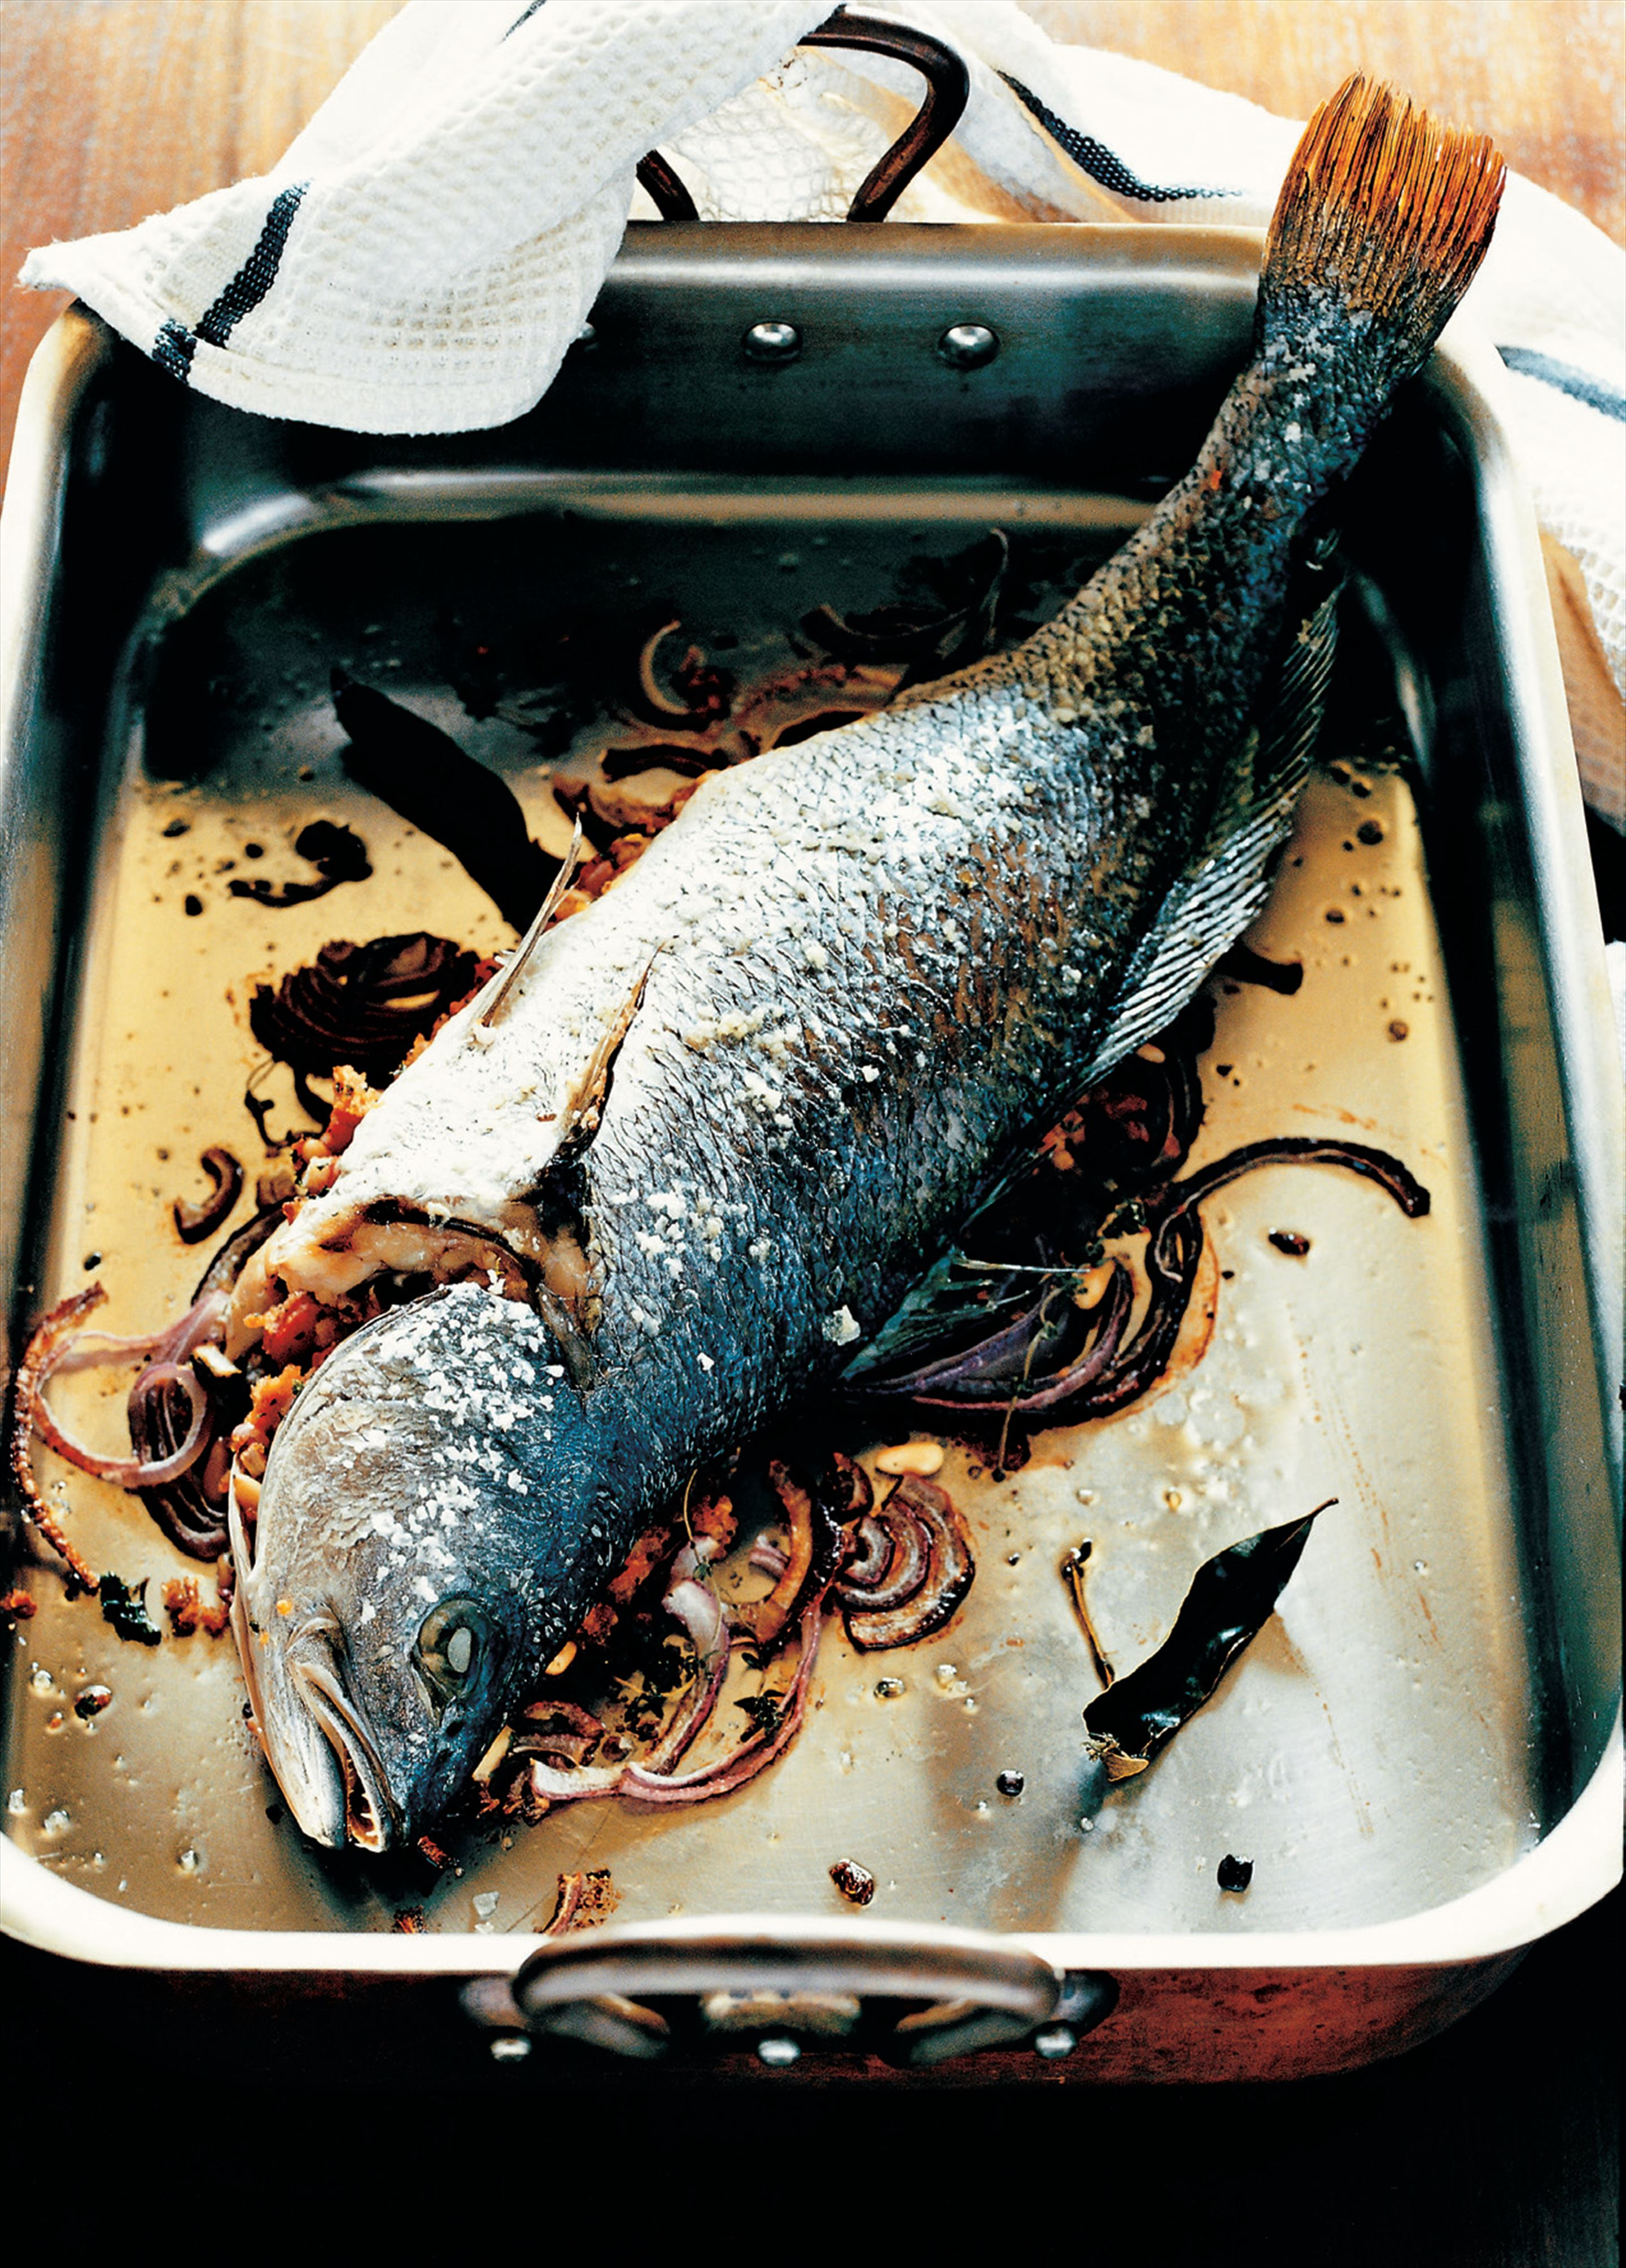 Baked stuffed whole fish